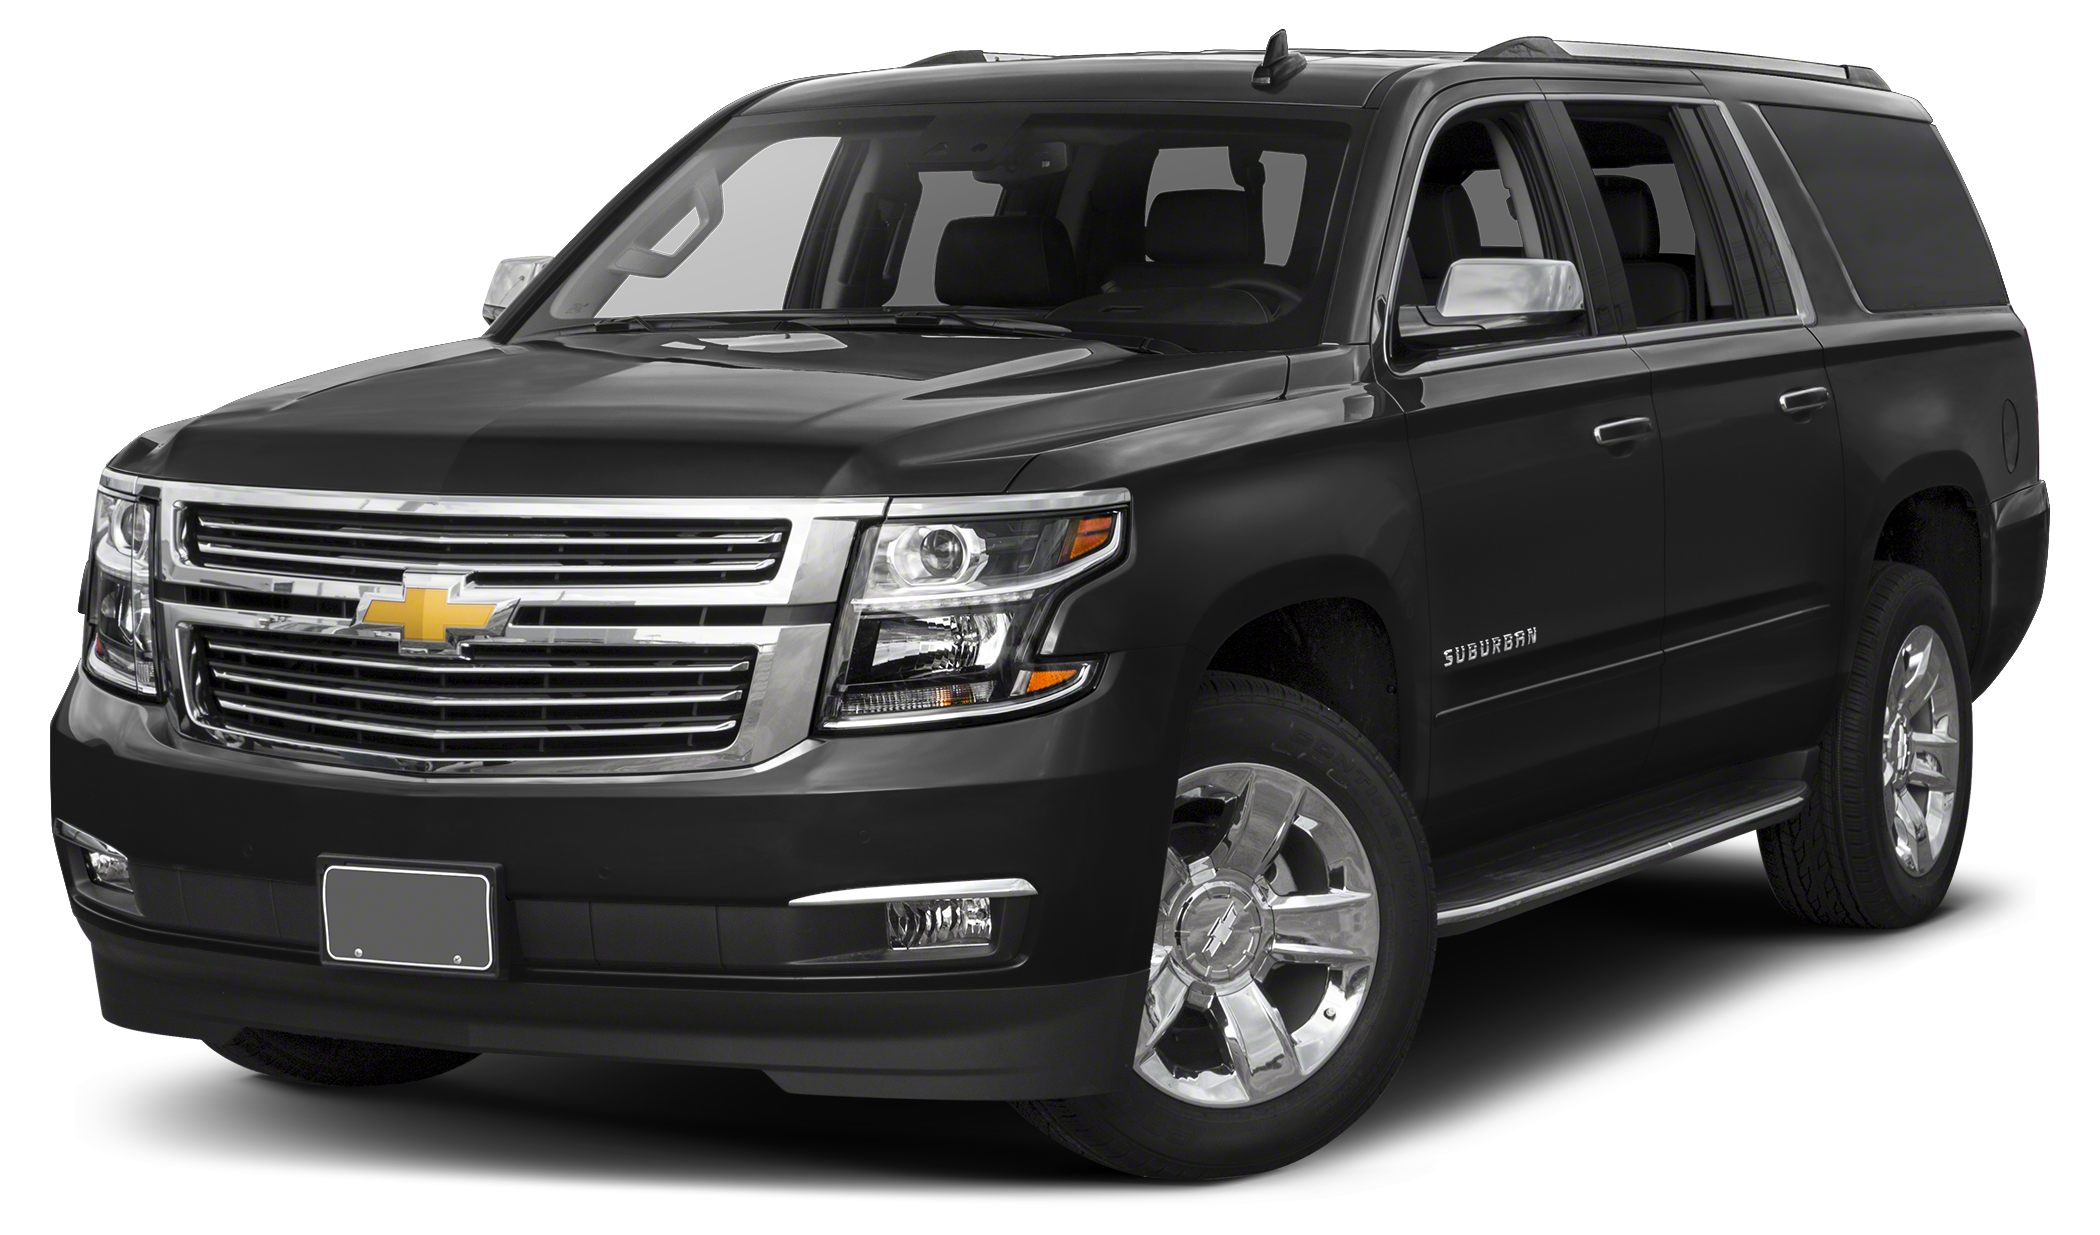 2017 Chevrolet Suburban Premier 3rd Row Seat Sunroof DVD NAV Heated Leather Seats Tow Hitch